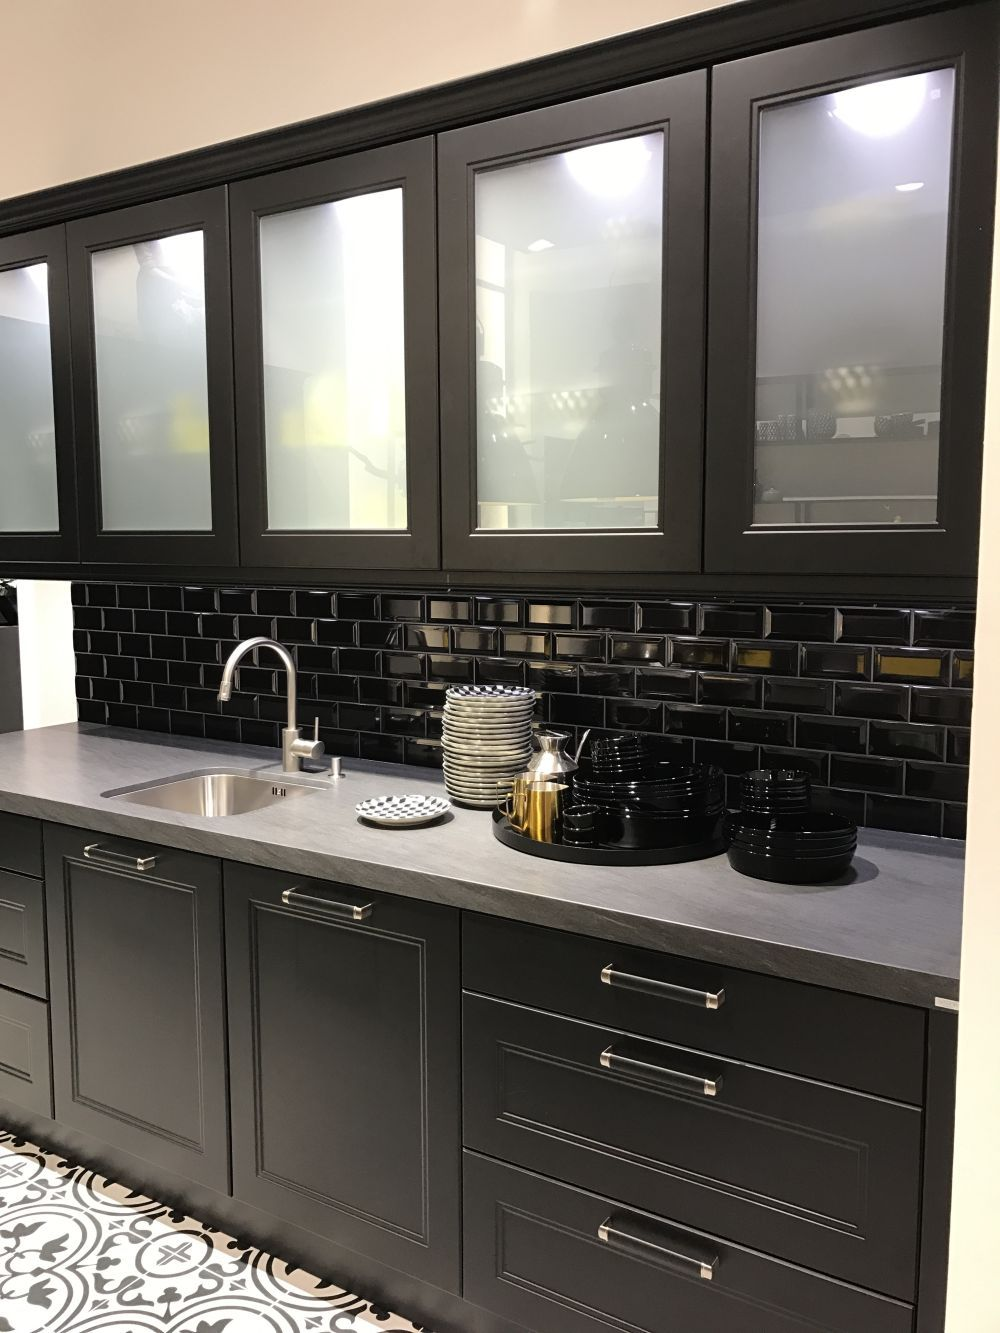 Good Black Kitchen Cabinets With Subway Tiles And White Frosted Glass Doors   Framed   Home Decorating Trends   Homedit... QualQuest***********